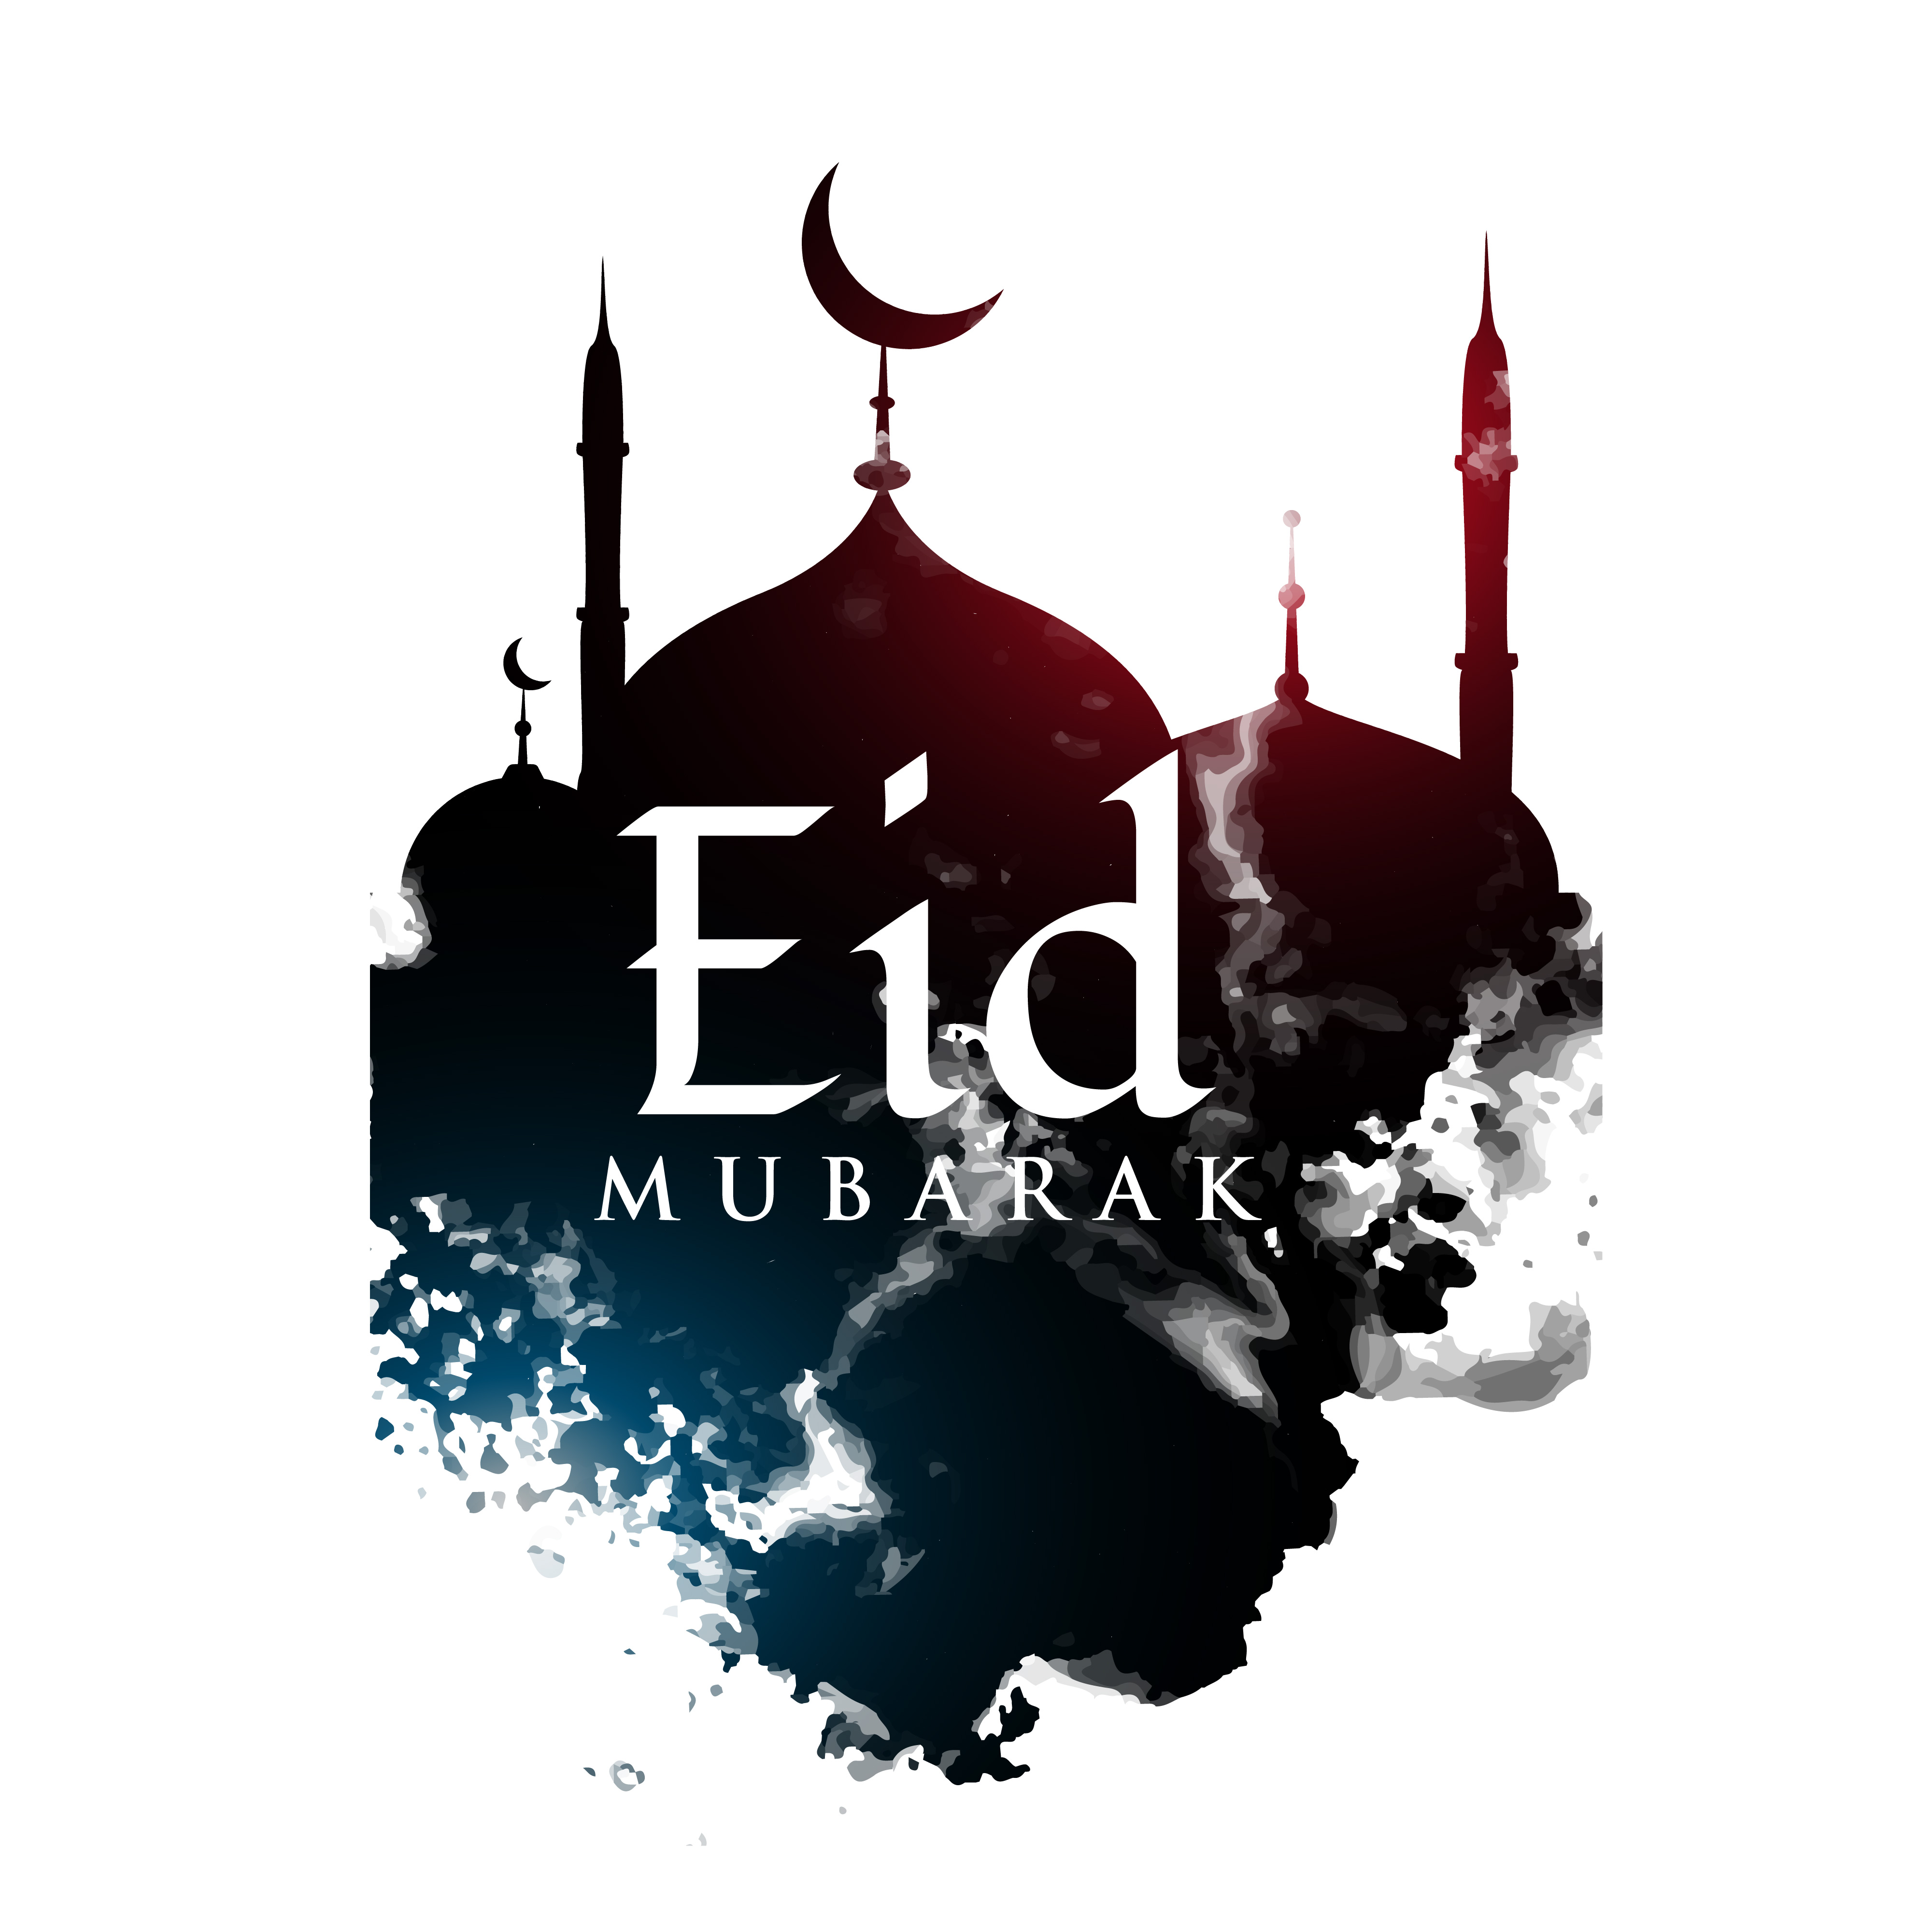 Eid Mubarak Greeting Design With Mosque Shape And Grunge Download